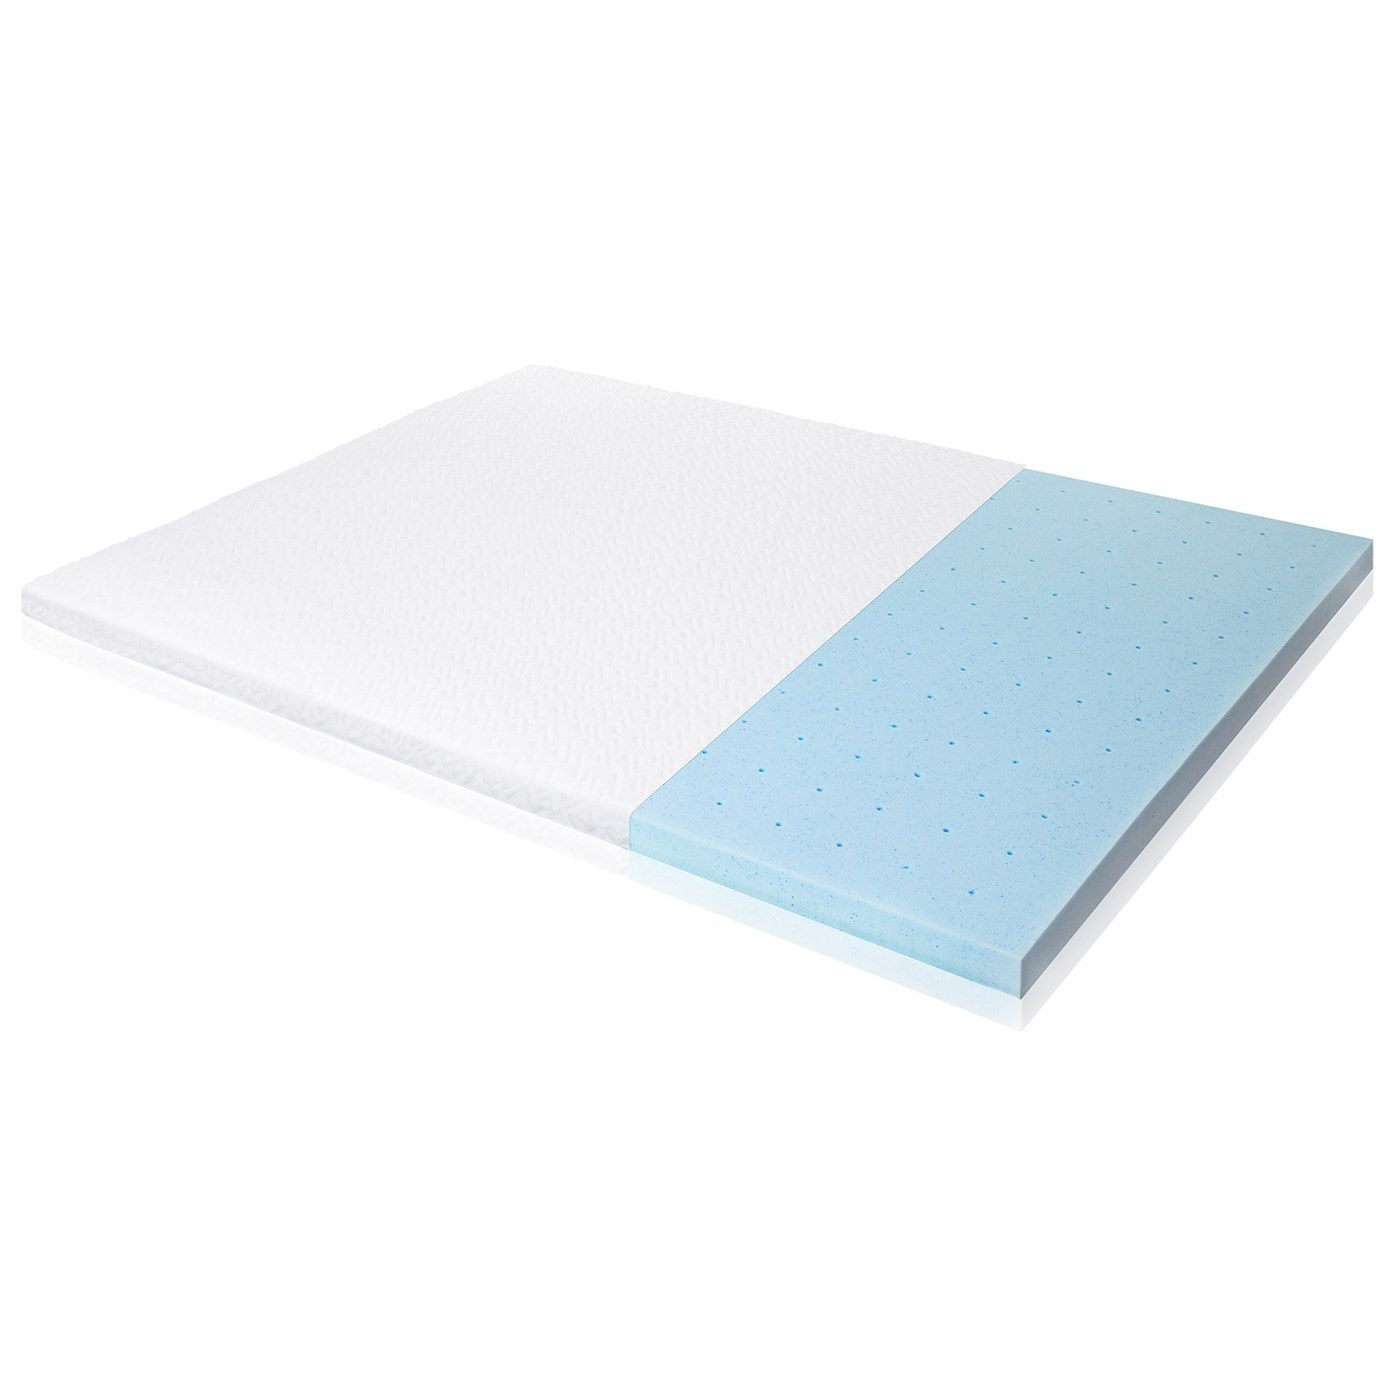 "Malouf Gel Memory Foam King 2.5"" Gel Memory Foam Mattress Topper - Item Number: IS25KK45GT"